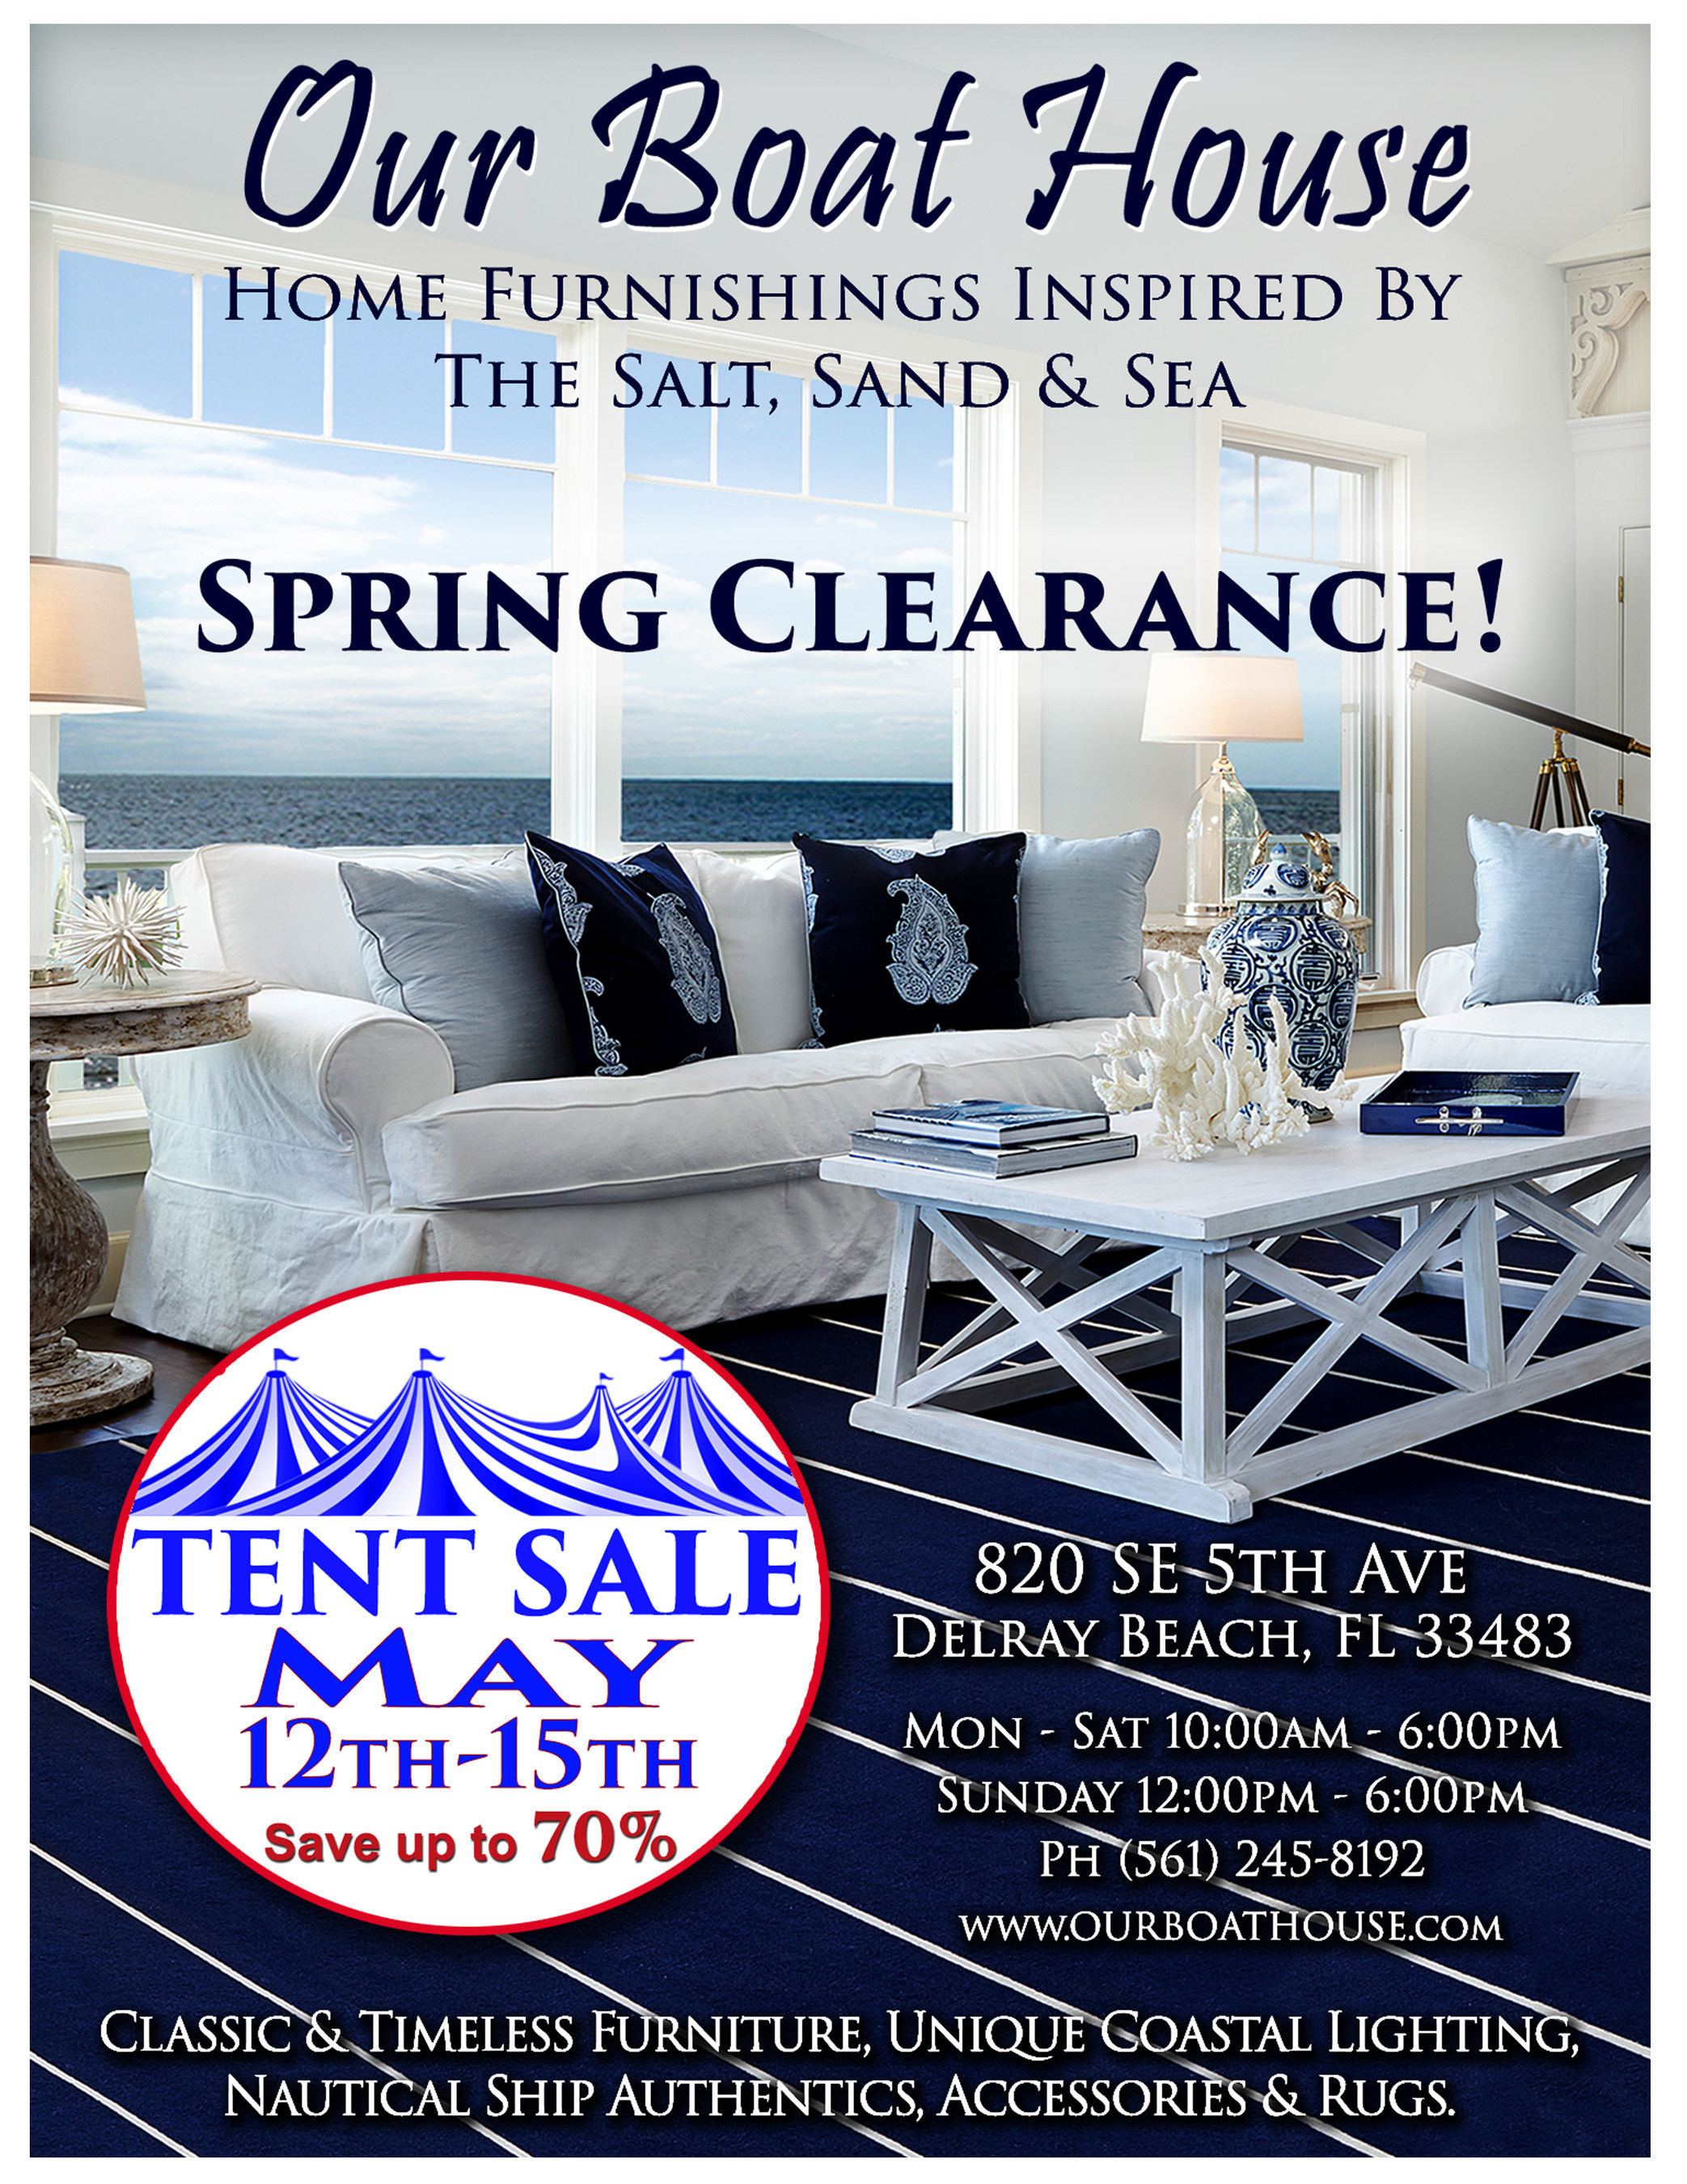 Coastal furniture tent sale our boat house in delray beach fl announces the biggest